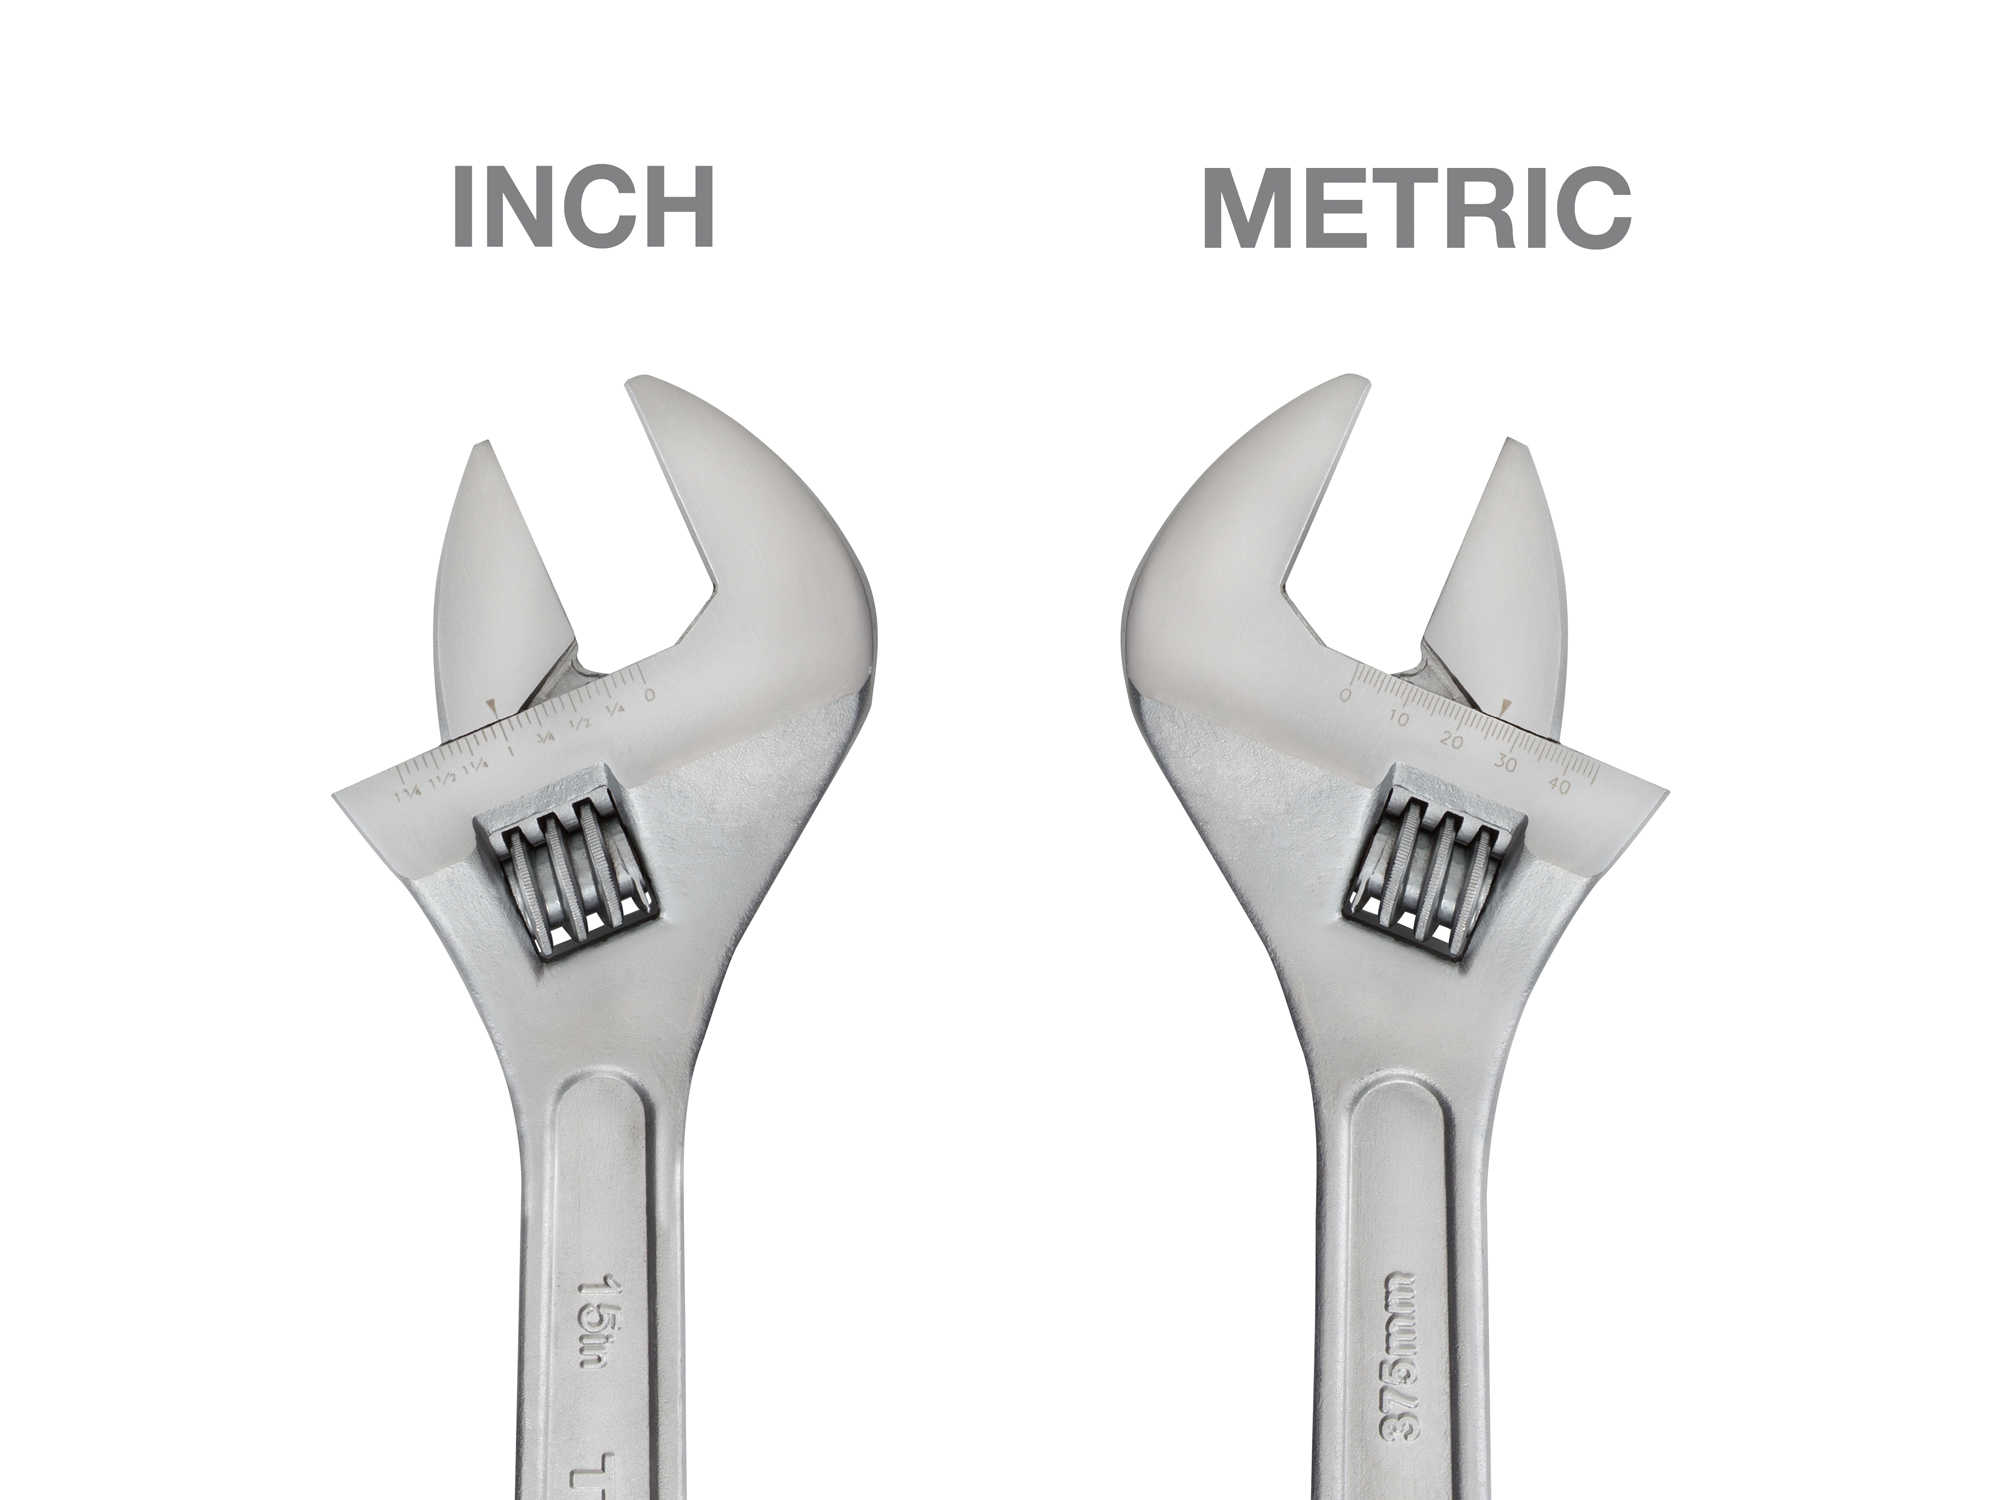 TEKTON 15-Inch Adjustable Wrench | 23006